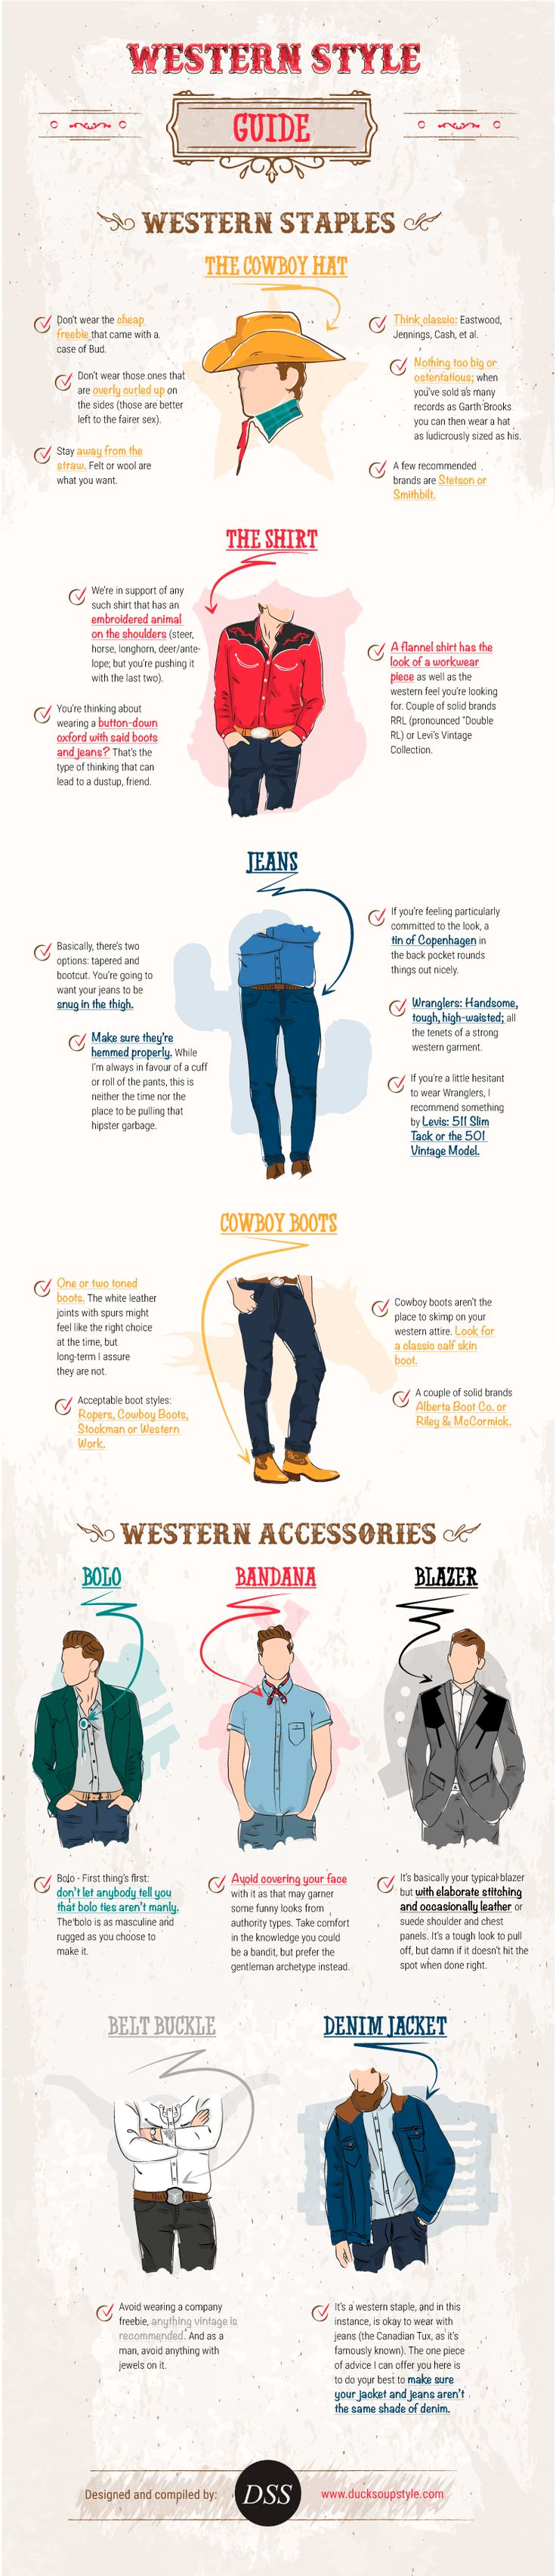 Western Style for Men - Cowboy Clothes